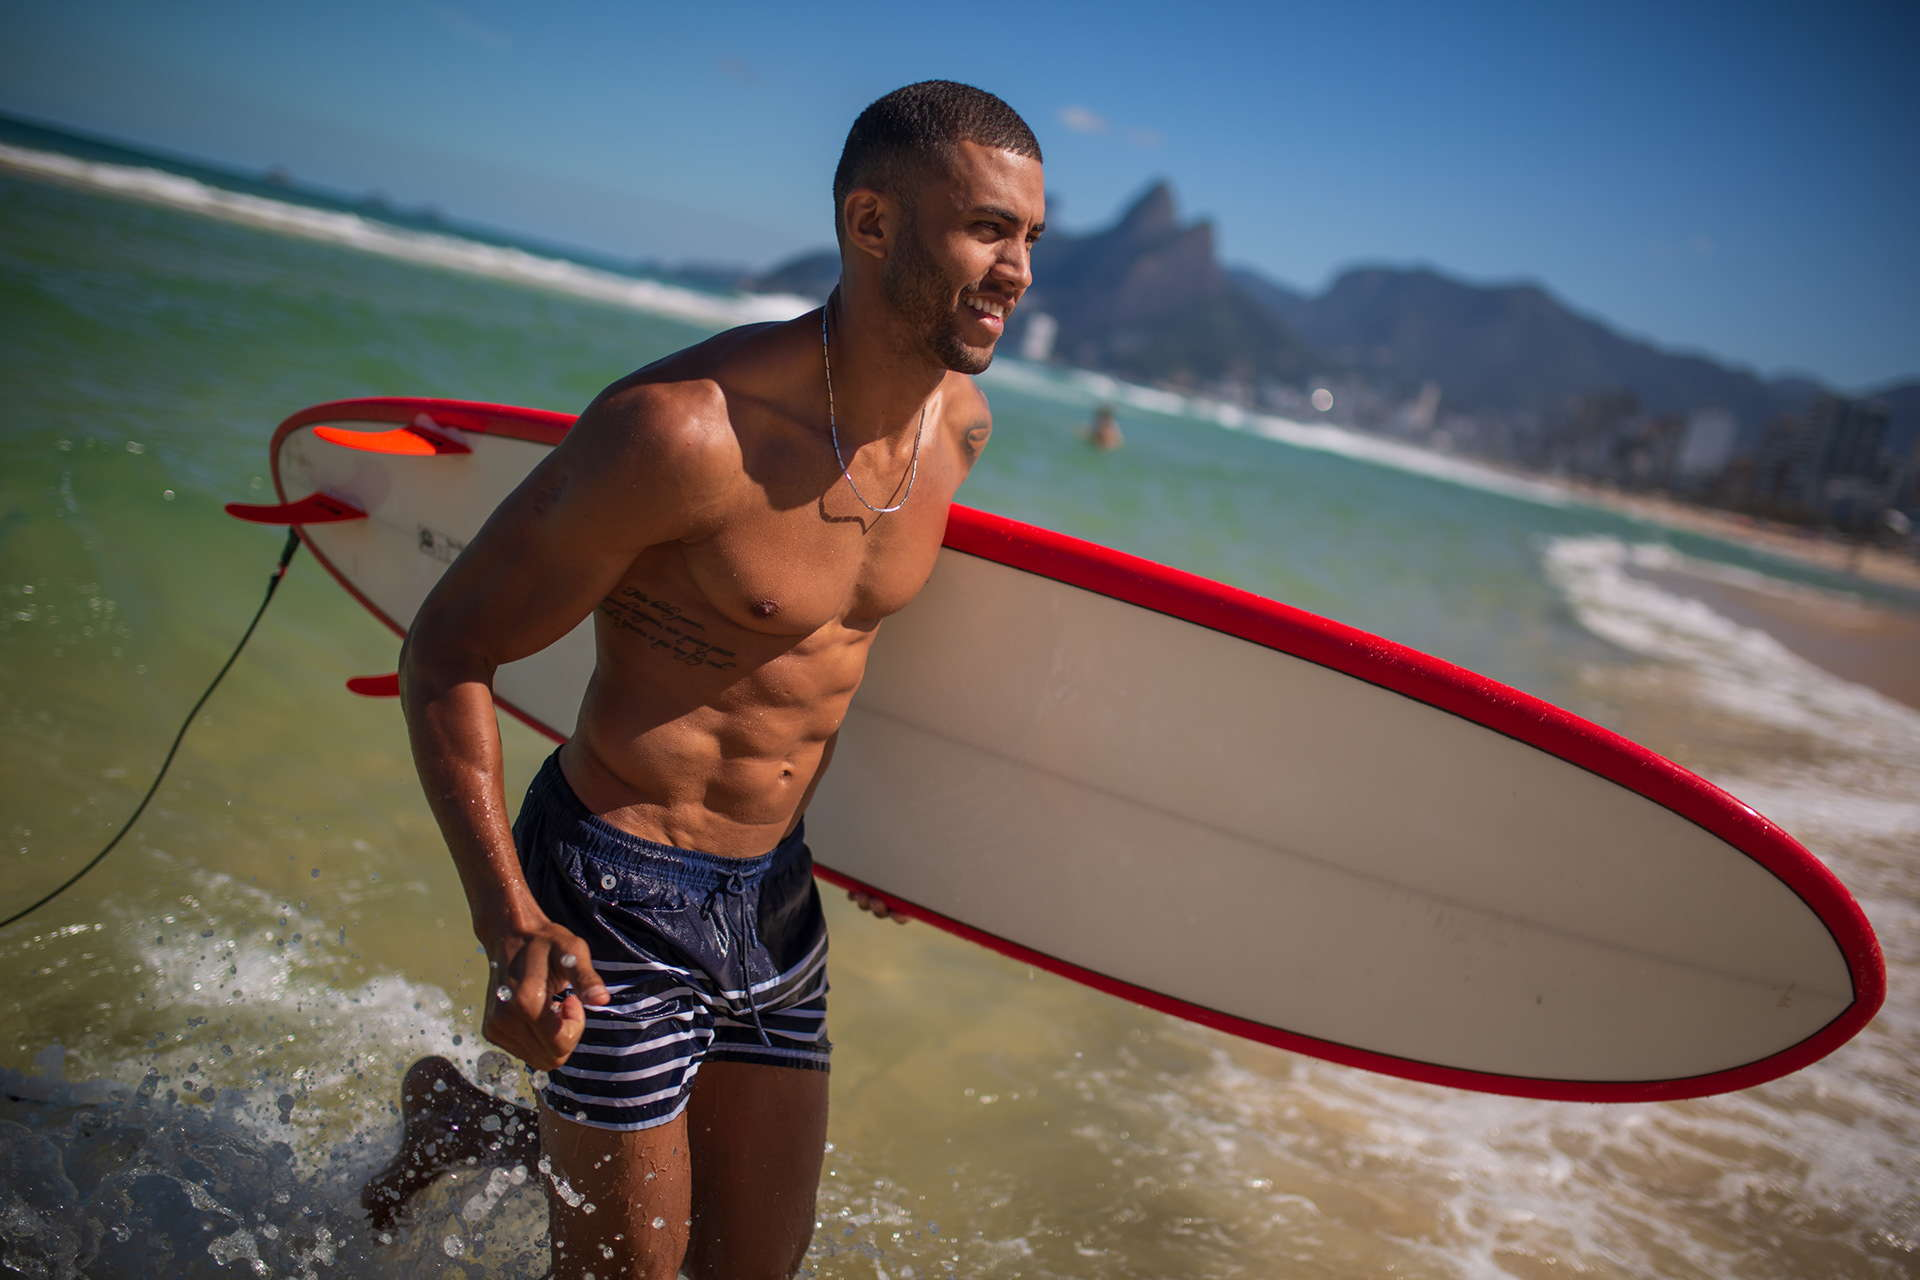 Diogo Souza by Pablo Sujoluzky for Alfis Jeans